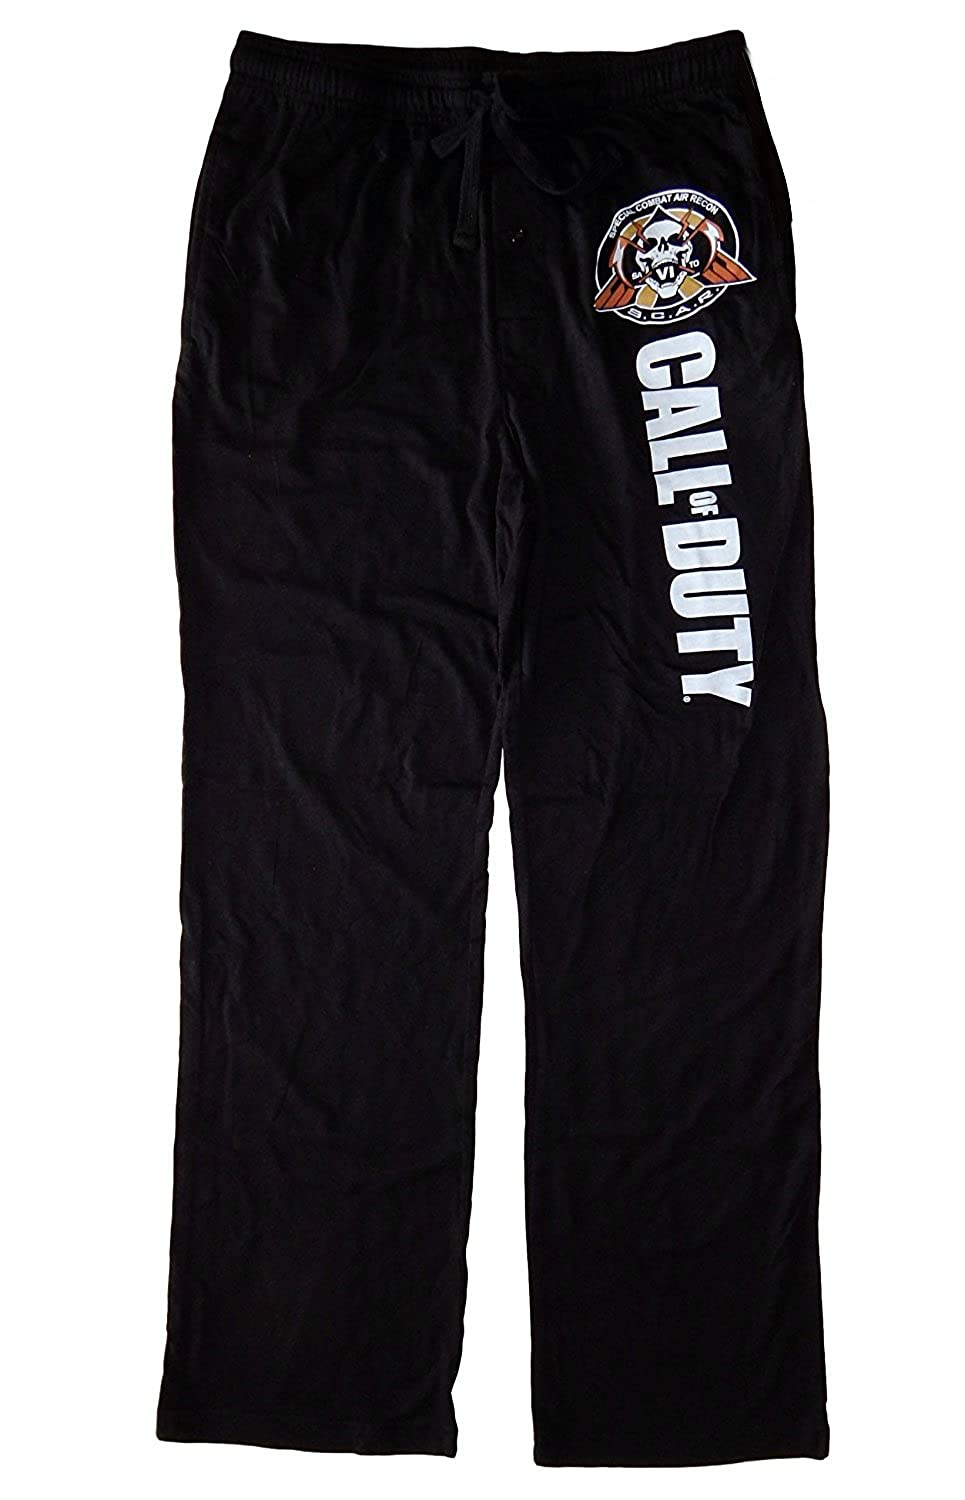 Call of Duty Infinite Warfare Mens Sleep Pants